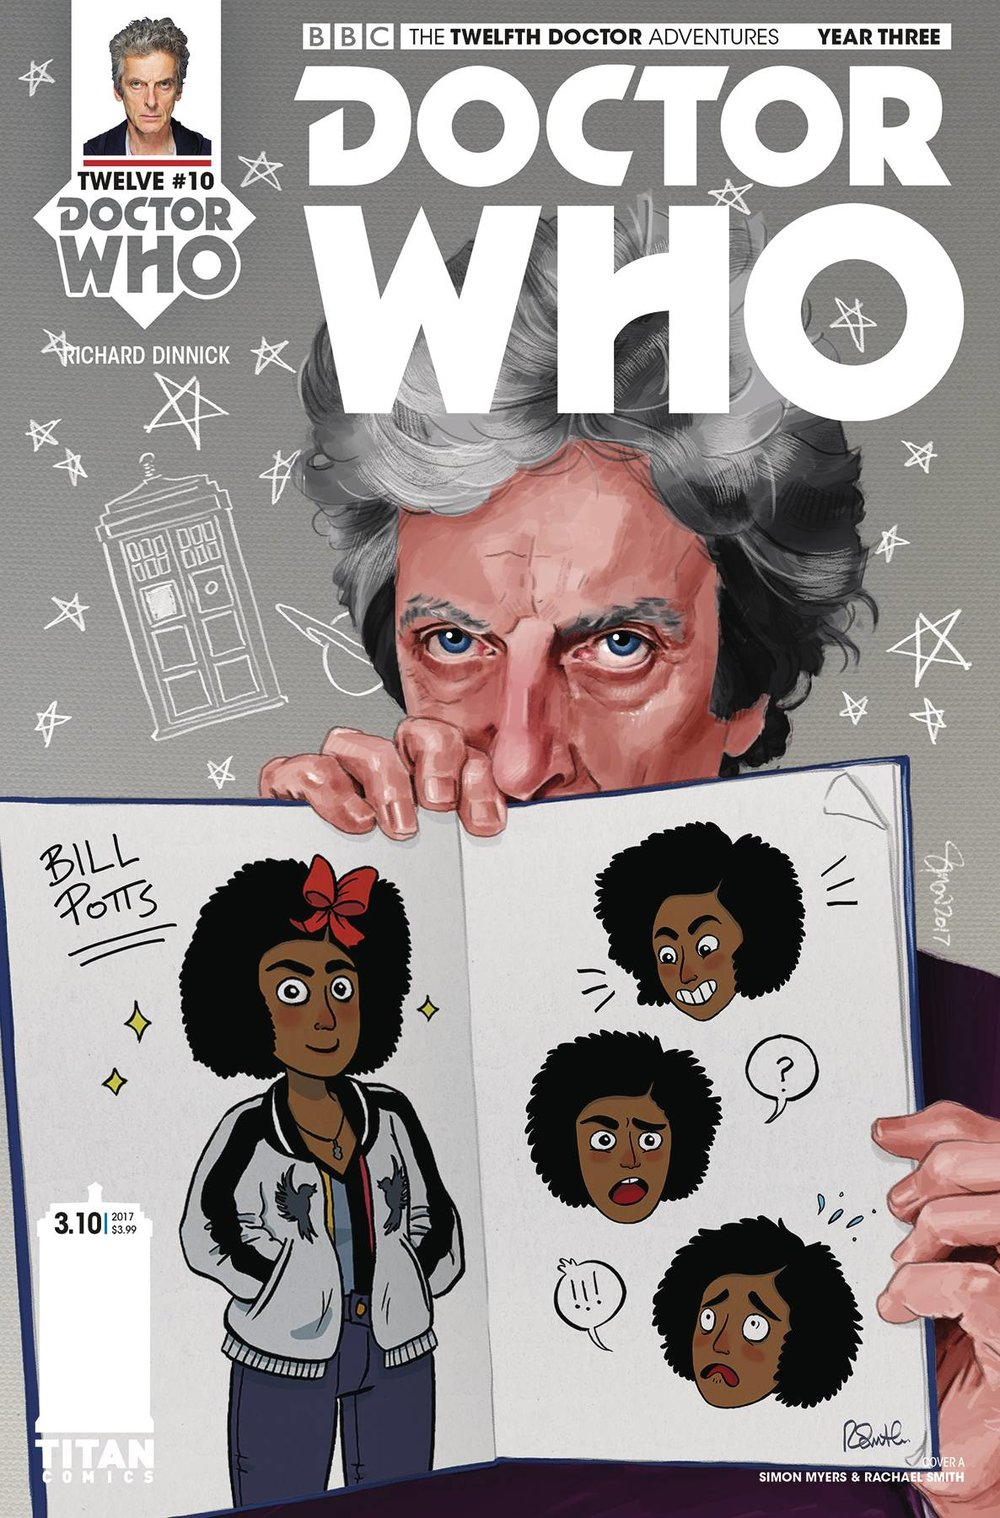 DOCTOR WHO 12TH YEAR THREE 10 CVR A MYERS _ SMITH.jpg